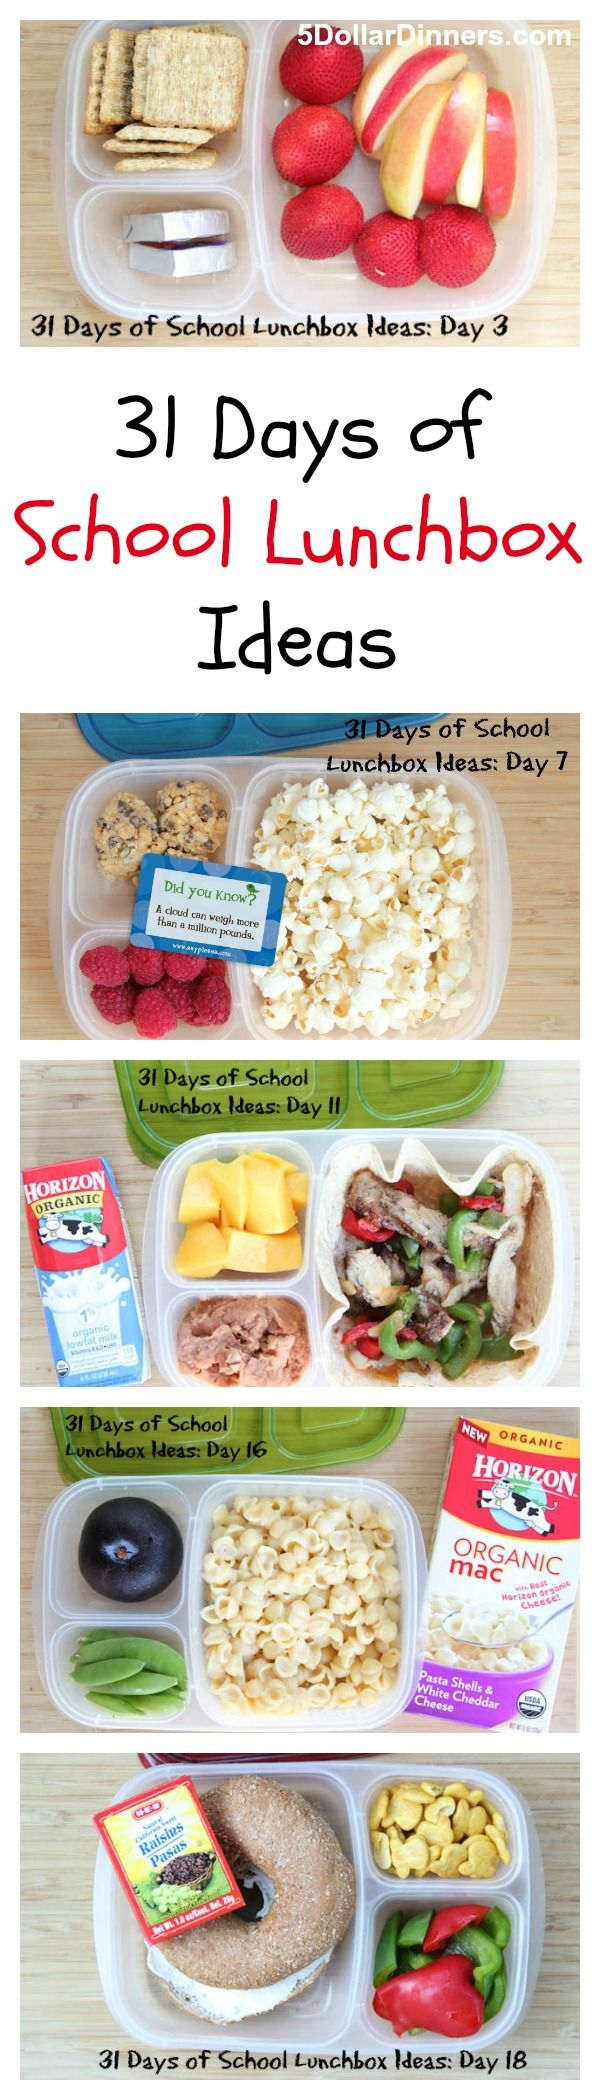 No more boring lunches!  Forget plain ol' peanut butter & jelly sandwiches.  Get your creative juices flowing with our 31 Days of School Lunchbox Ideas from 5DollarDinners.com